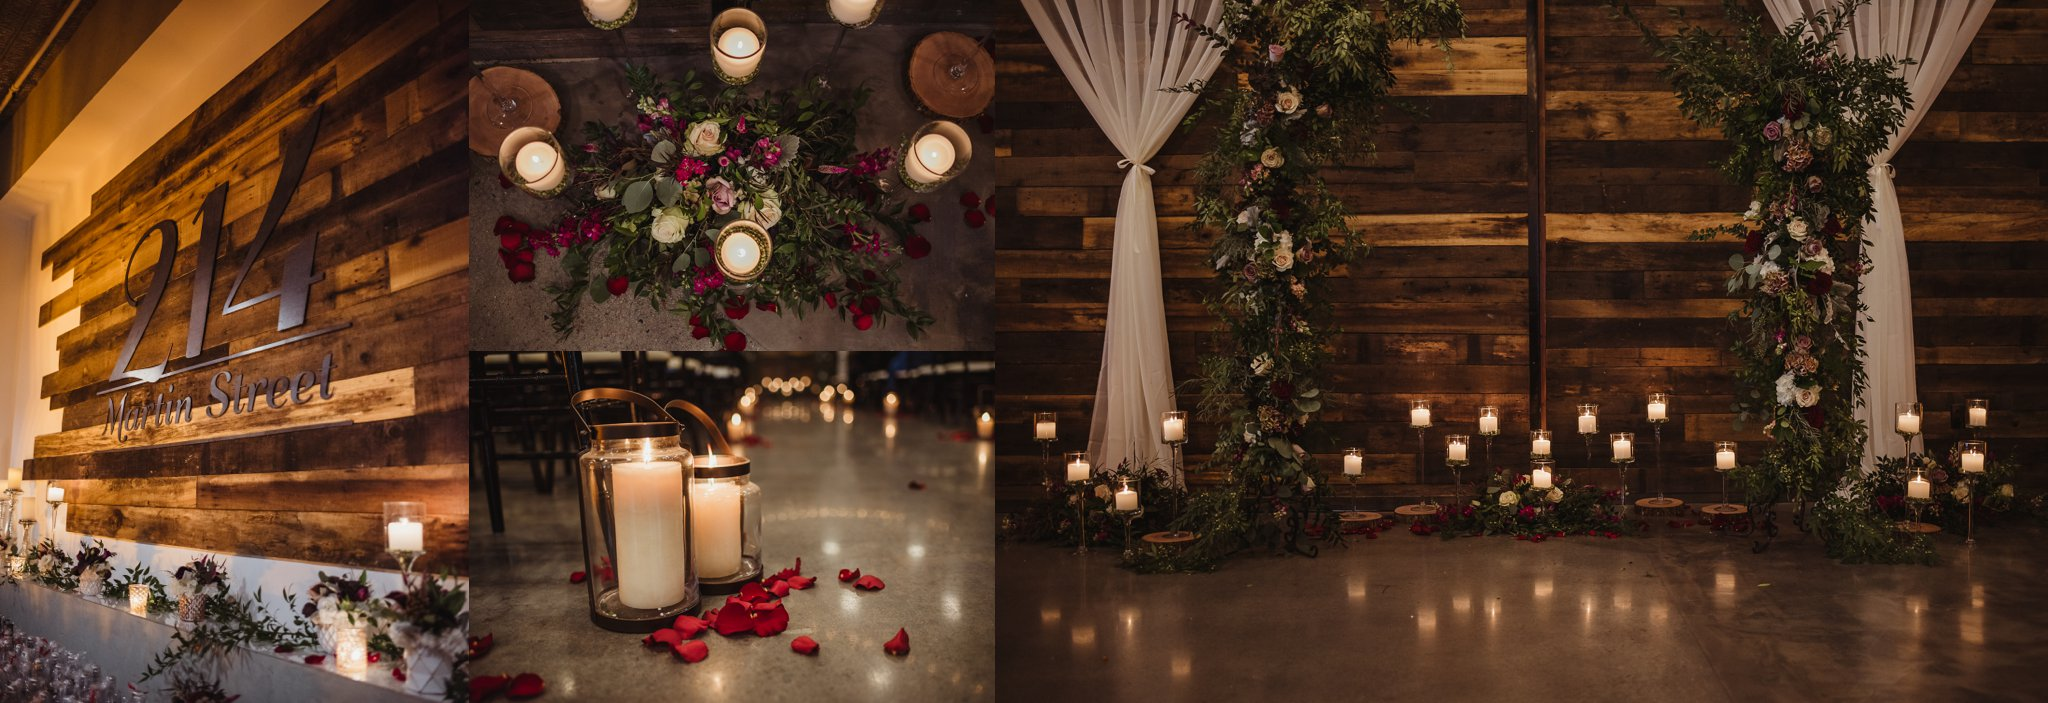 Details of the wedding ceremony in downtown Raleigh included lots of candles and gorgeous greenery and flowers, photos by Rose Trail Images.